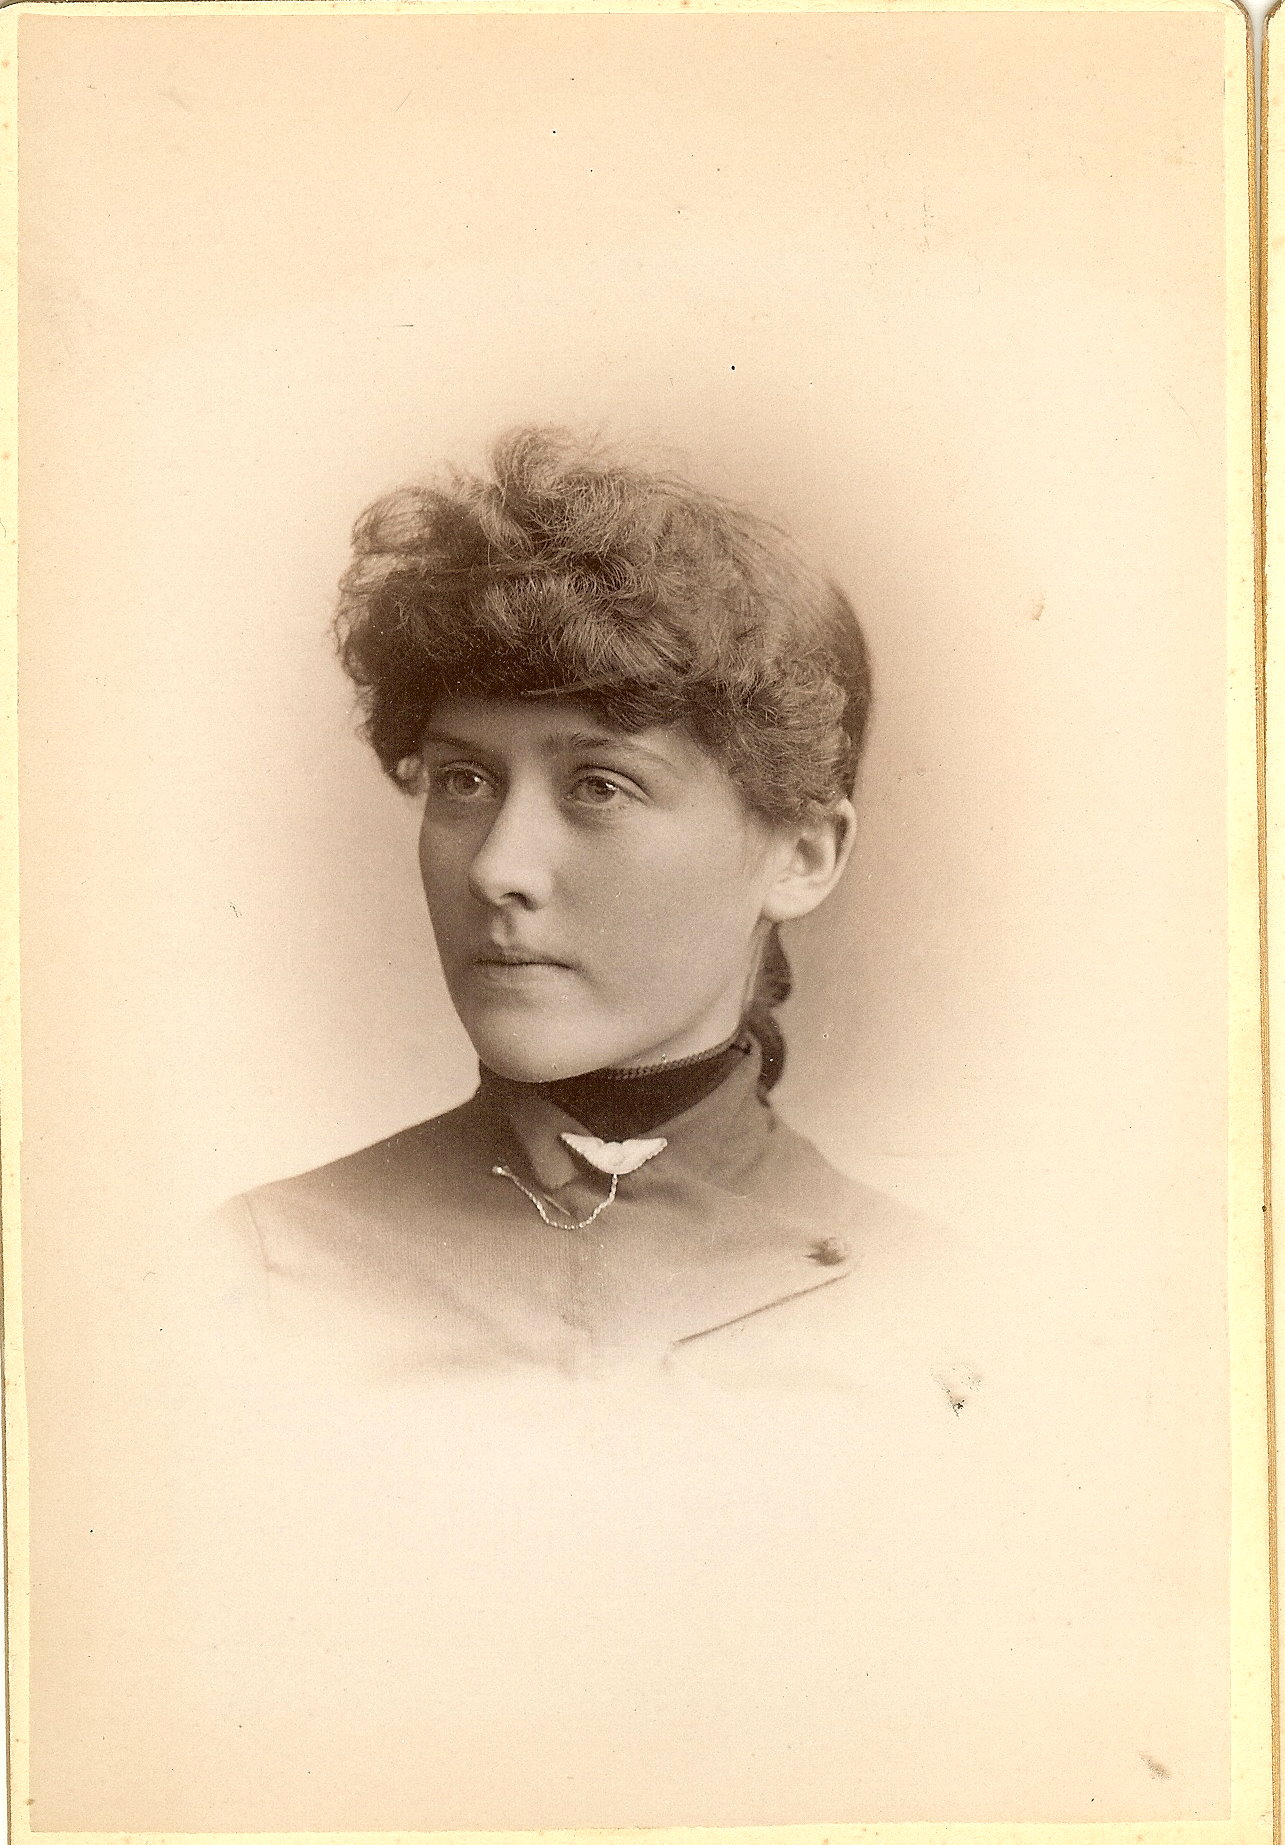 Emma A. Putney, graduate of 1888 Manchester High School (NH); Blog Cow Hampshire